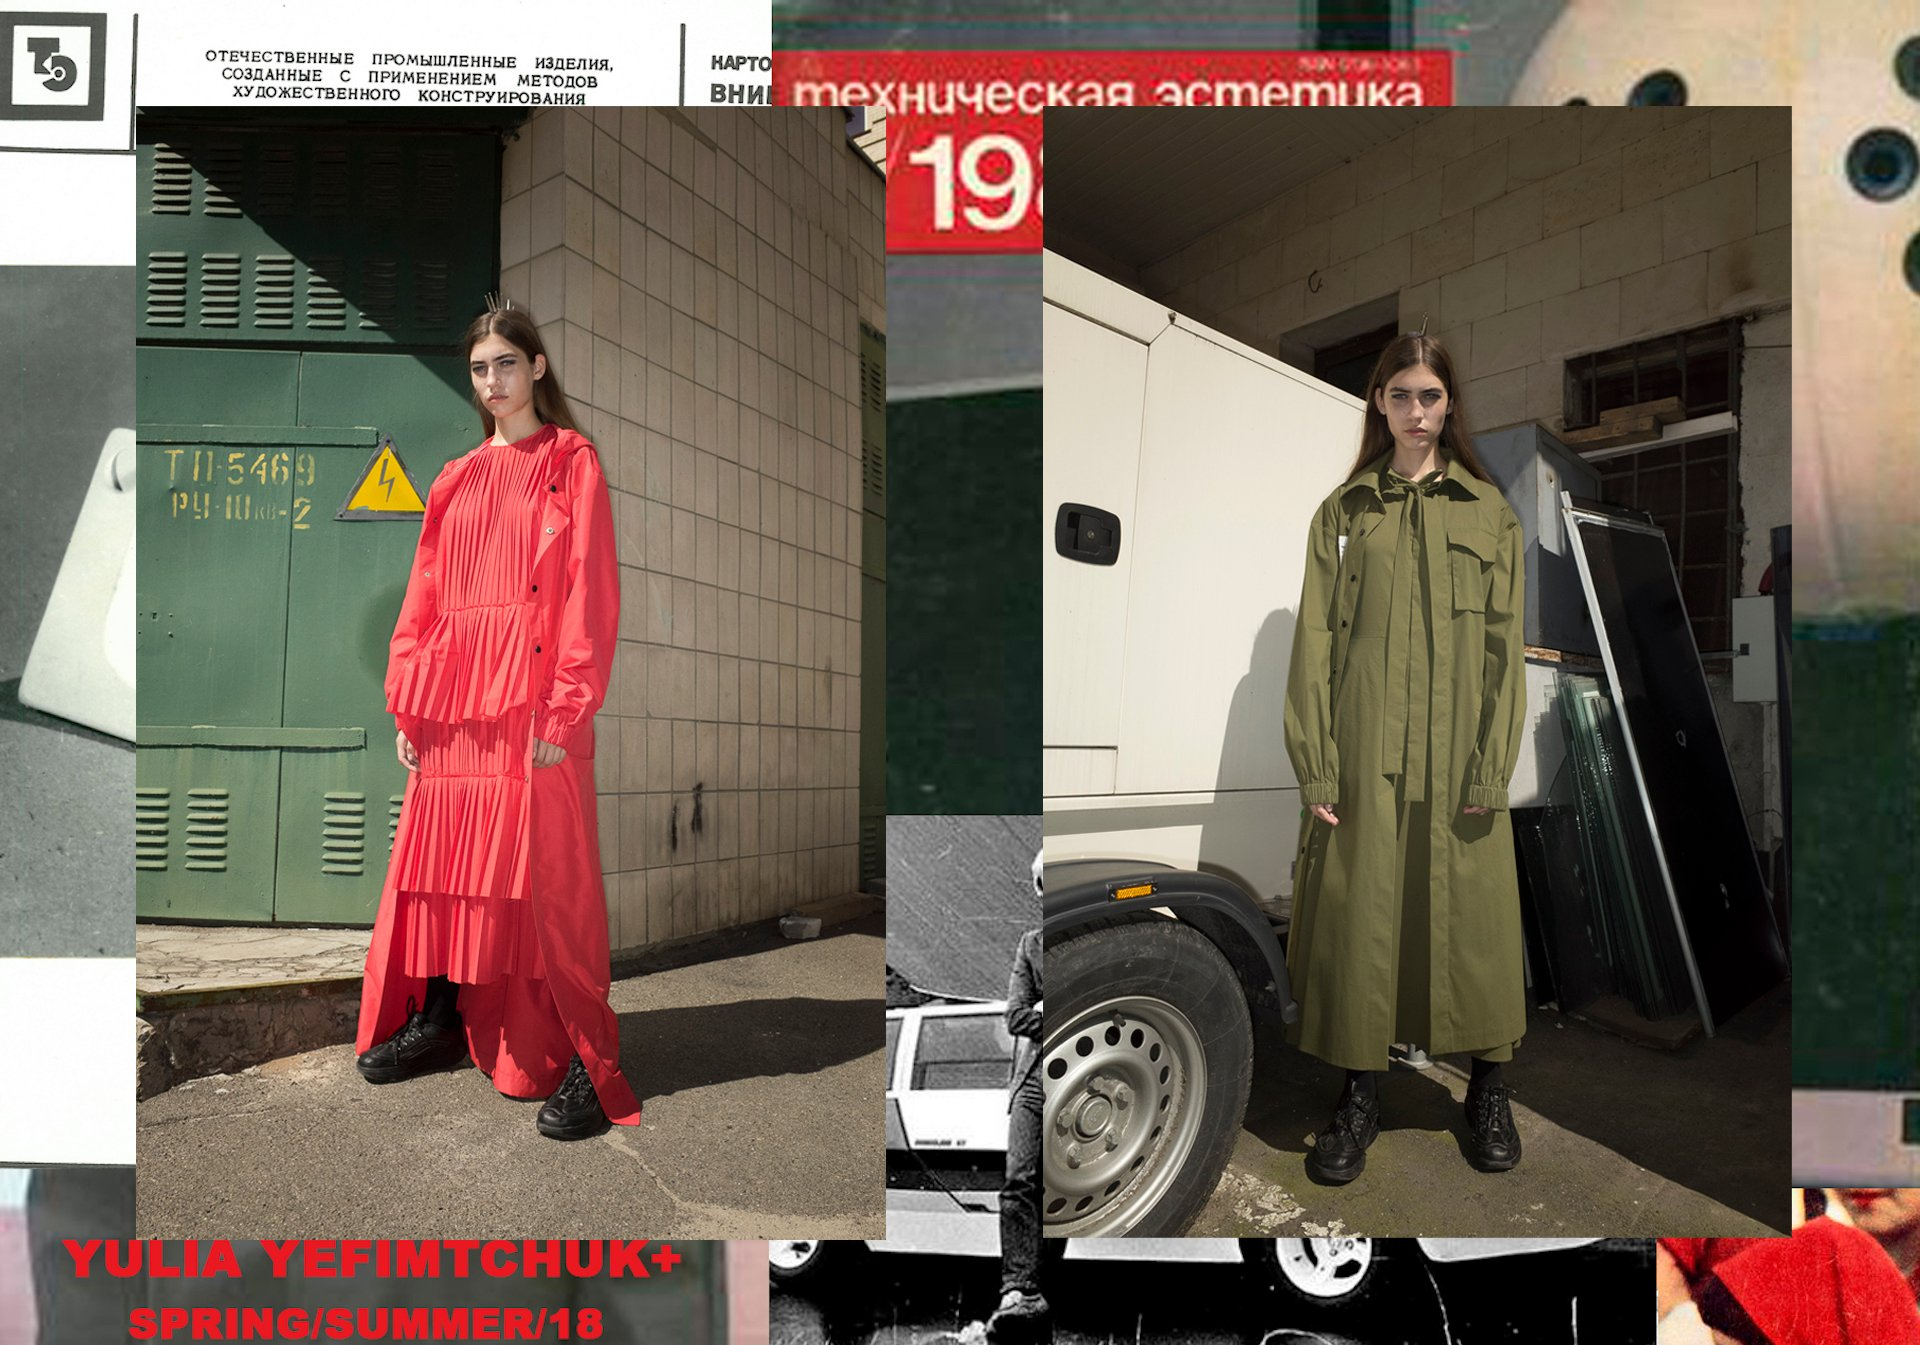 Back to work: how a rare Soviet magazine inspired designer Yulia Yefimtchuk's bold new uniform